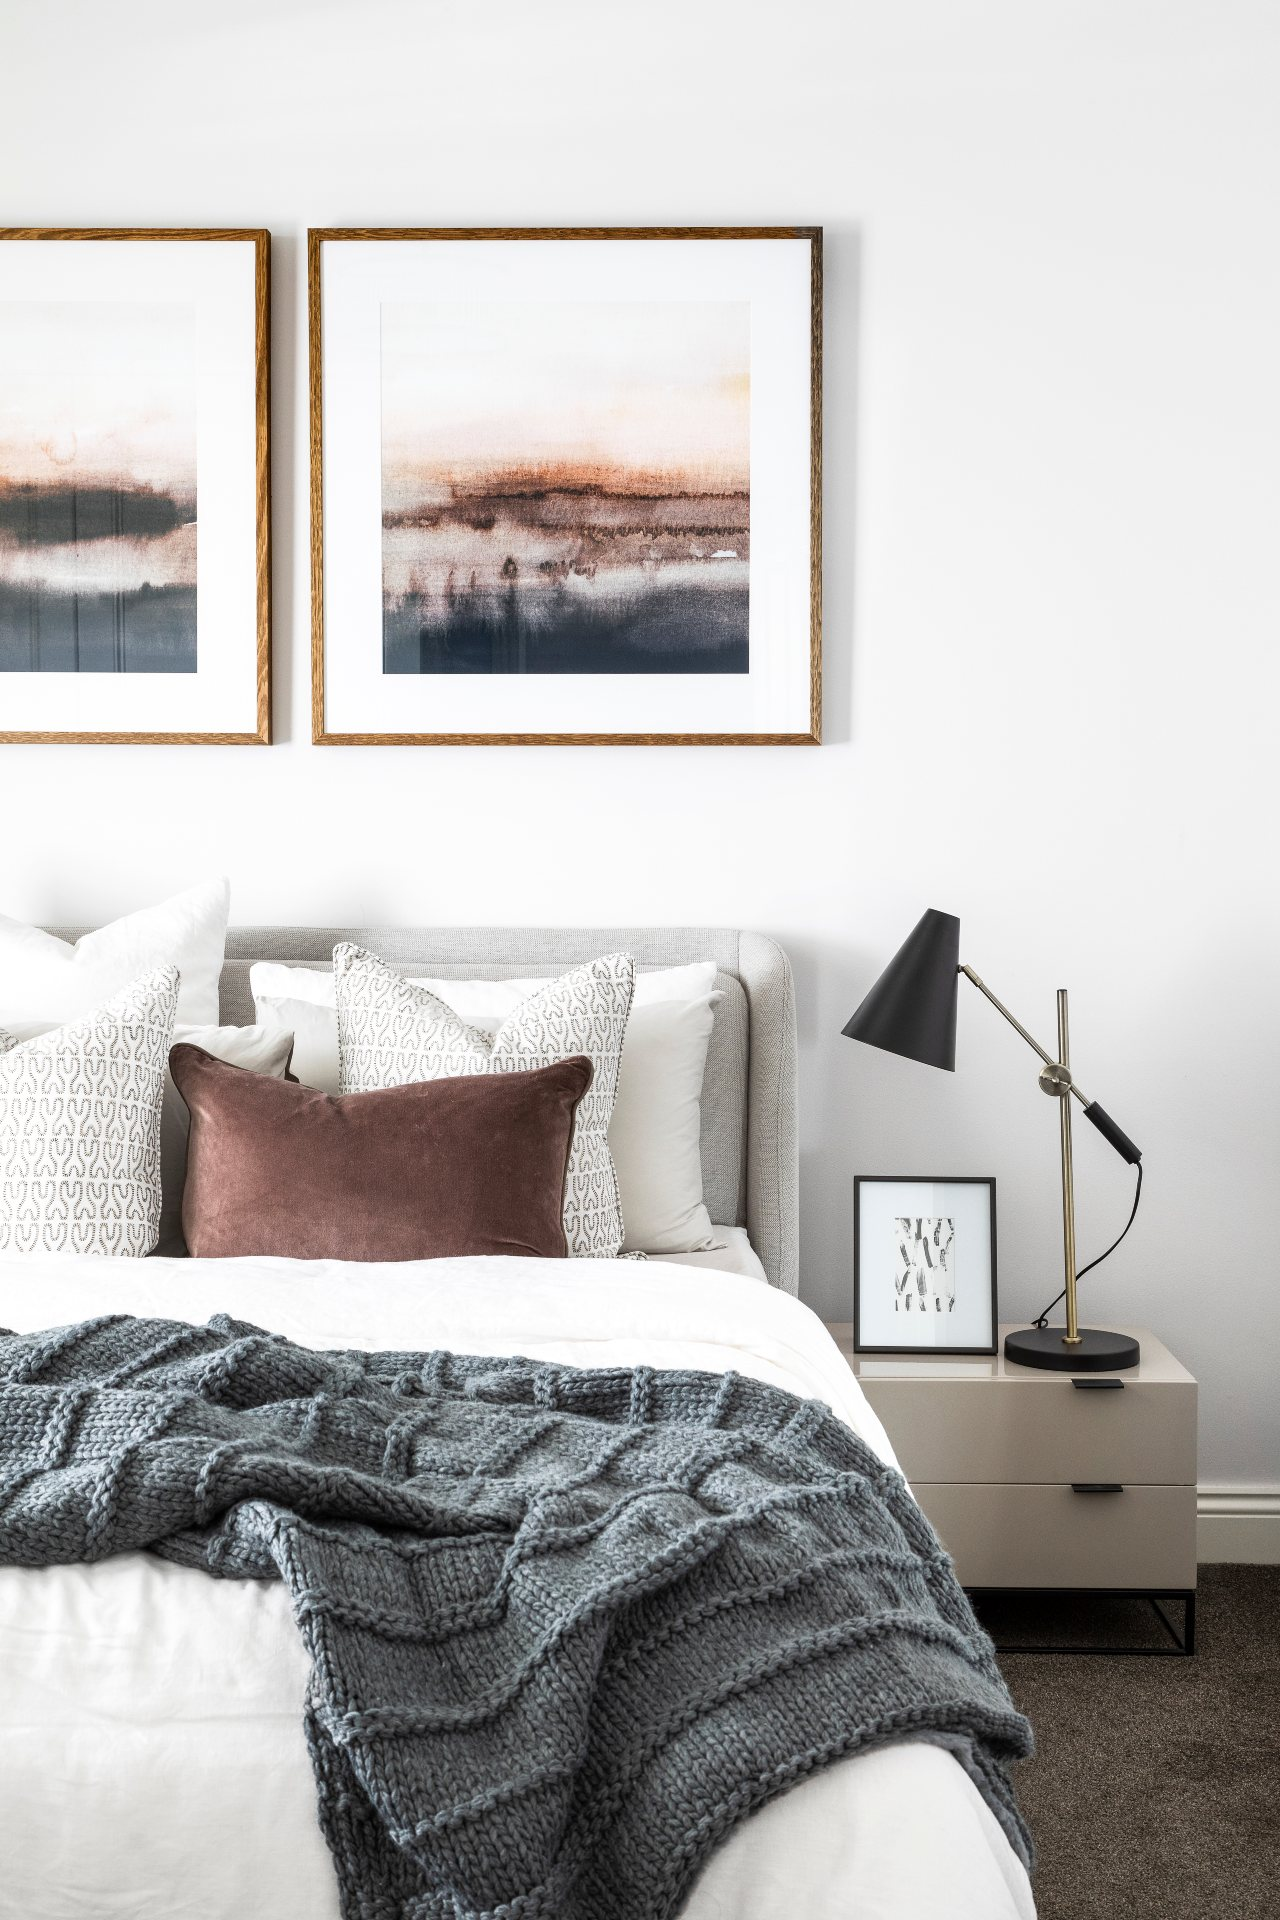 masculine bedroom design with mid century bedside table lamp grey throw and brown velvet cushion on bed